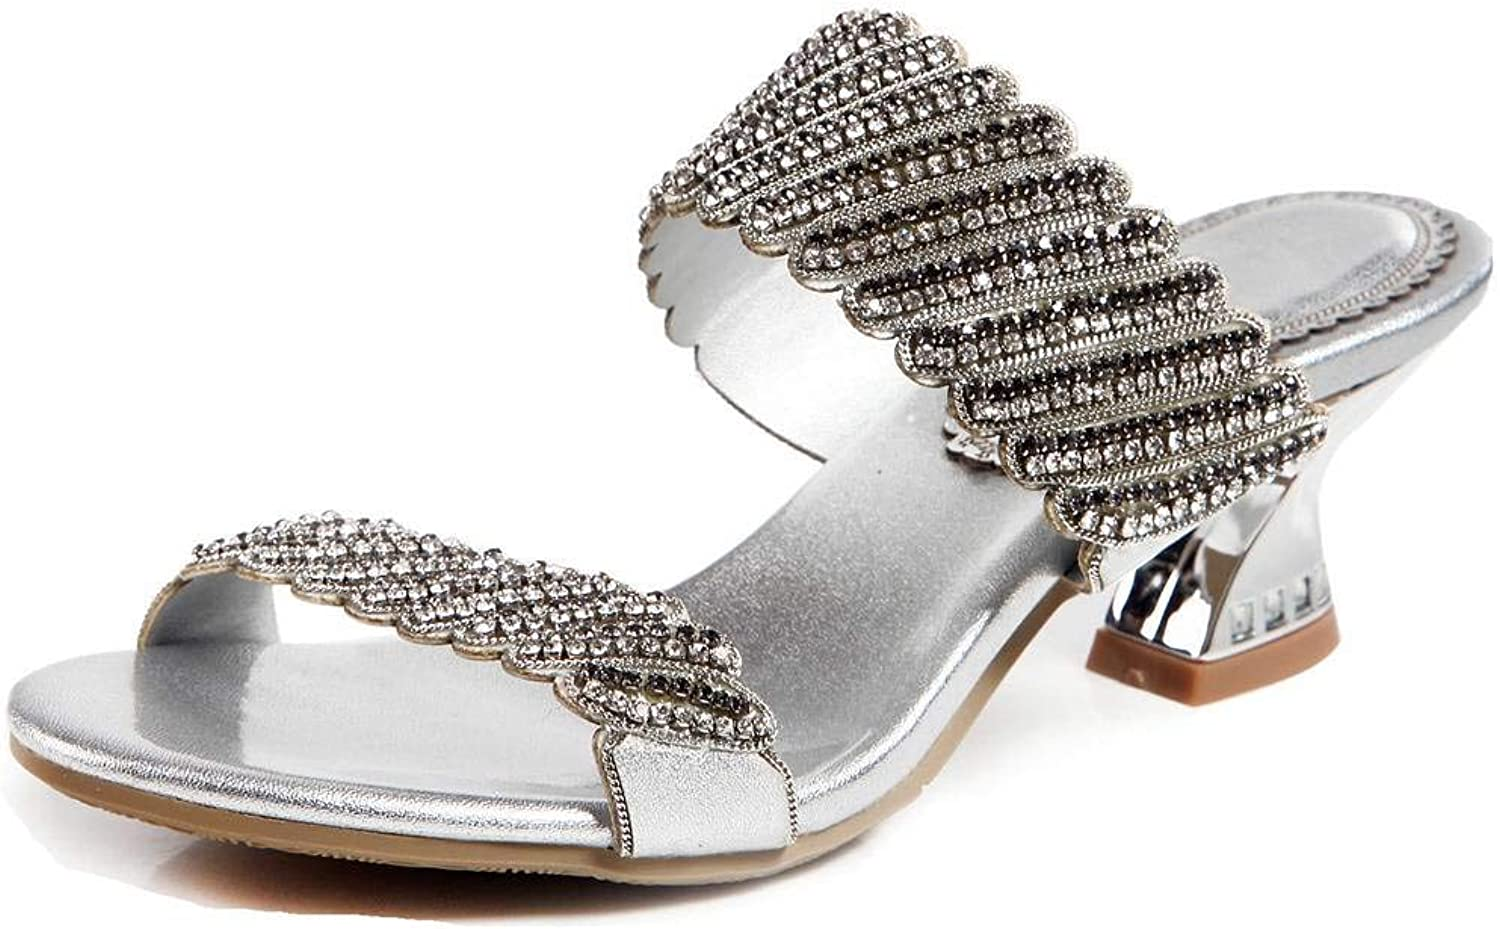 LizForm Women Open Toe Dress Party Leather shoes Glitter Studded Slip On Casual Sandals